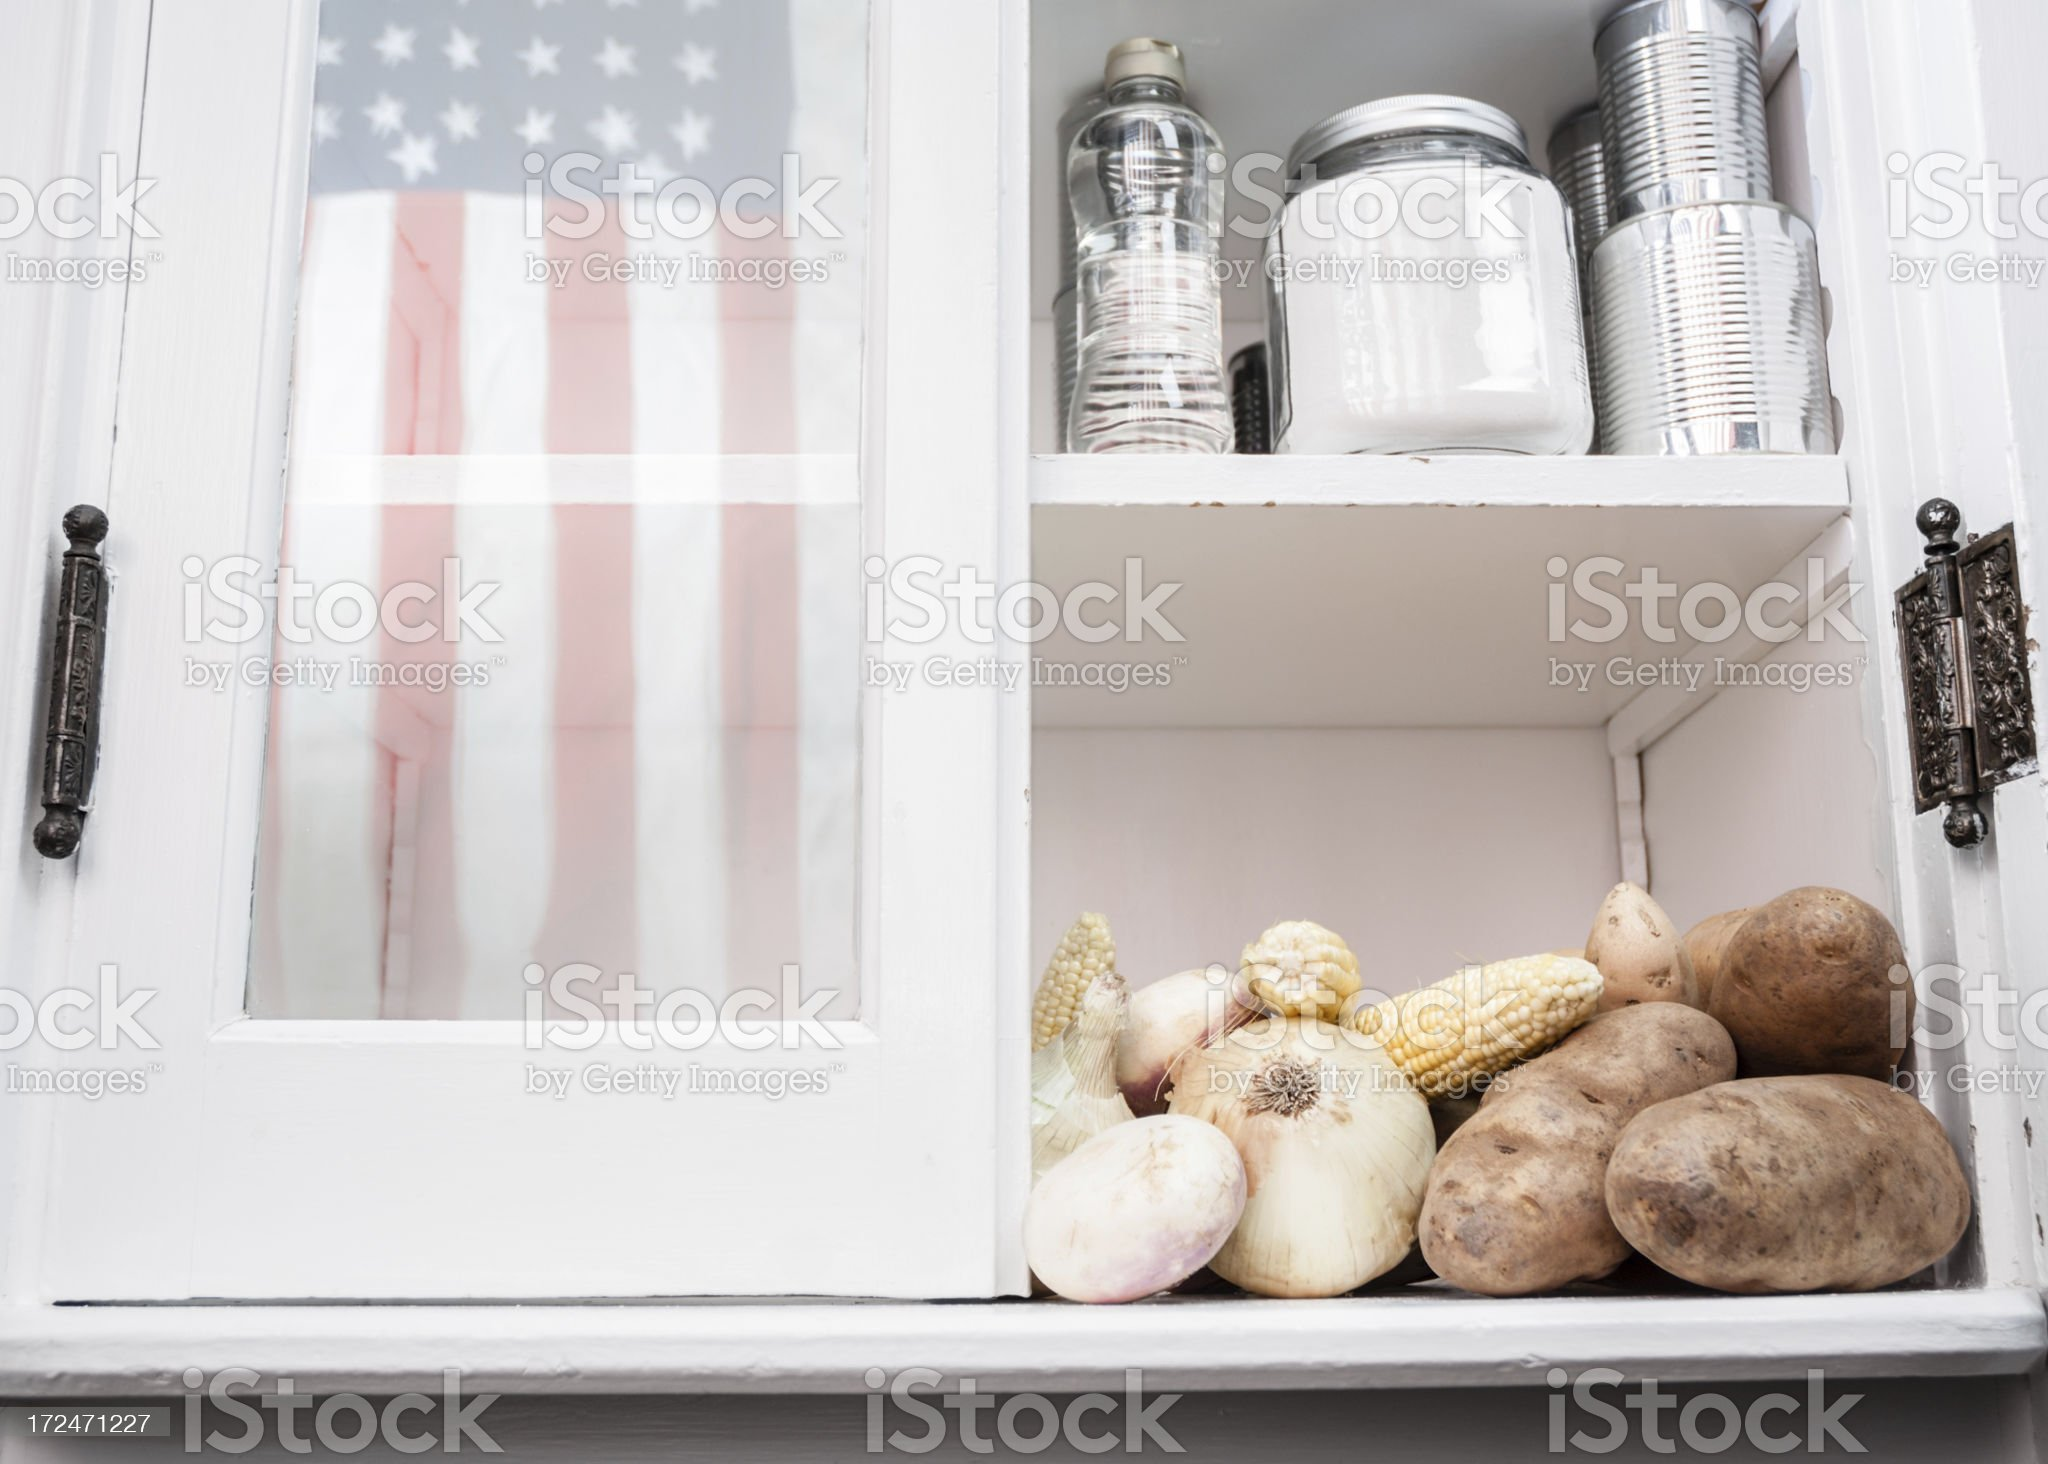 American pantry royalty-free stock photo